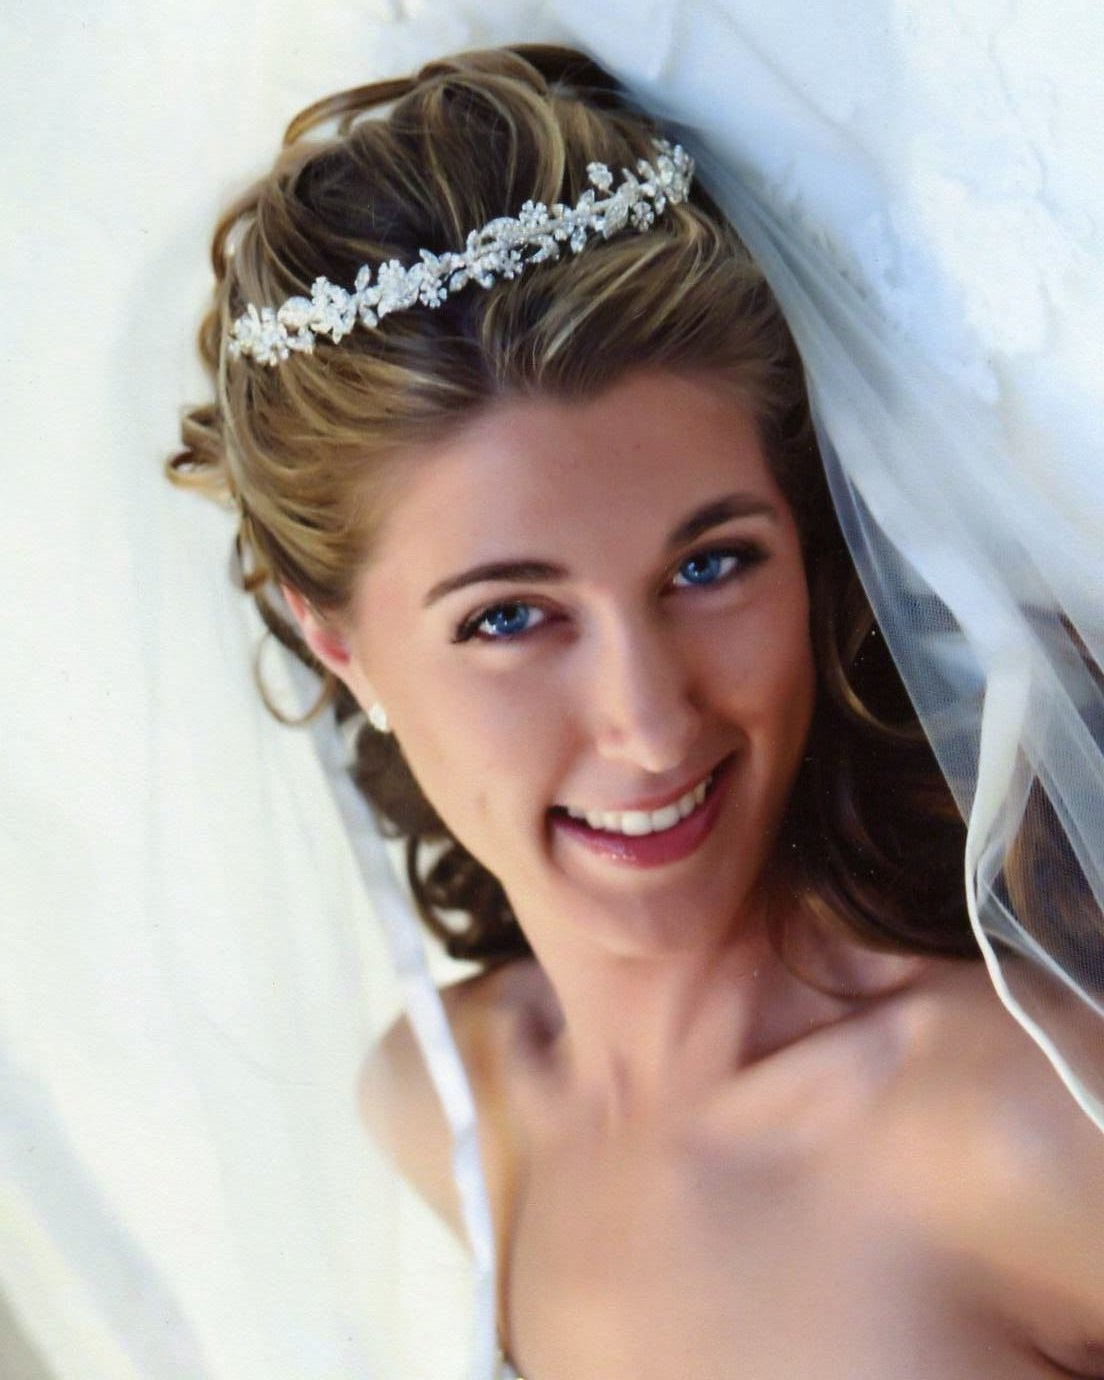 Makeup Ideas For Wedding Day: Make-Up Magazine: Wedding Day Makeup Tips And Advice